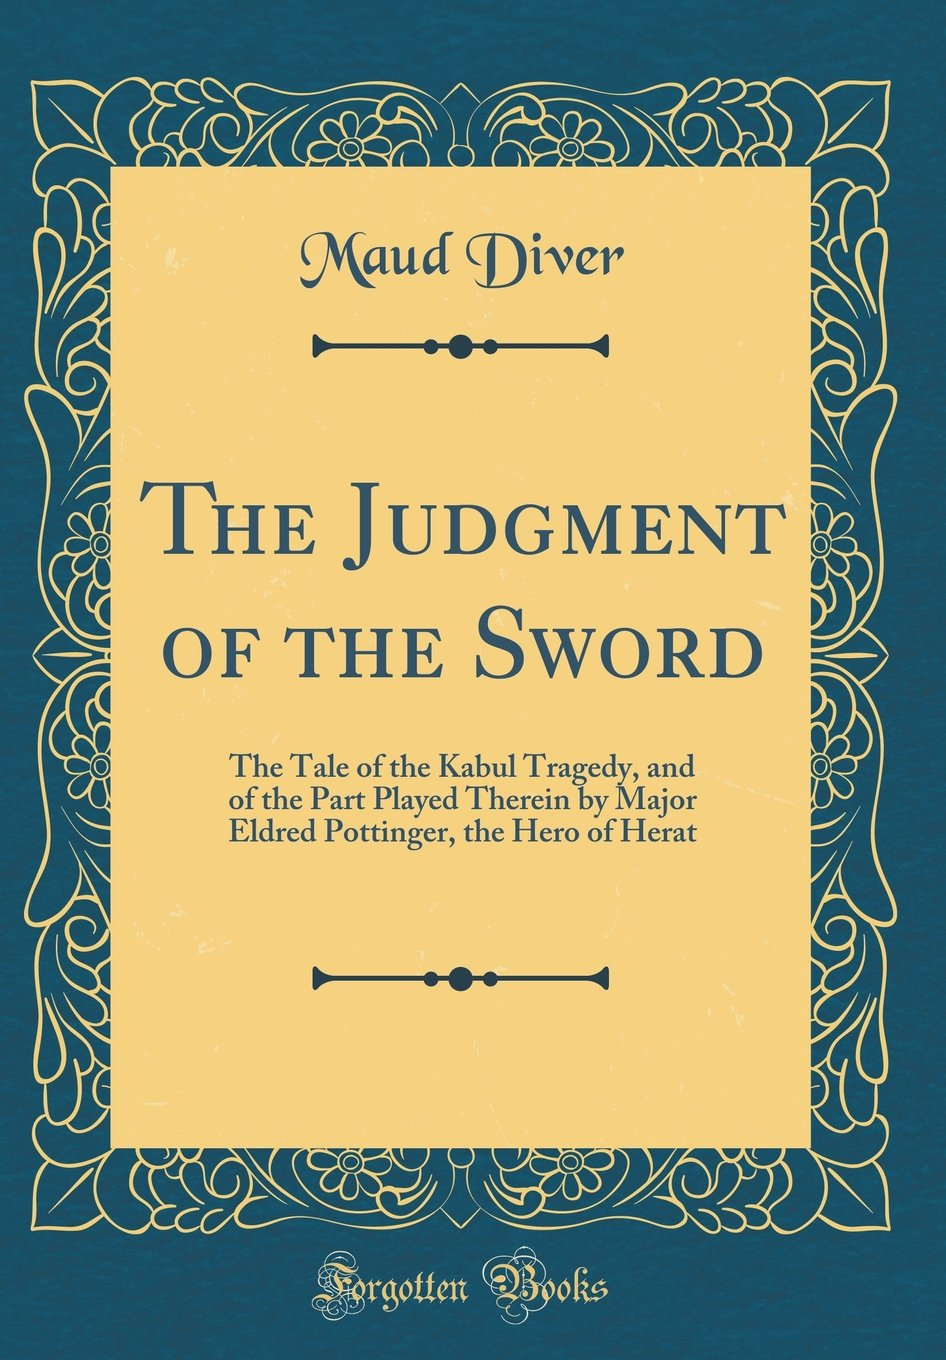 Read Online The Judgment of the Sword: The Tale of the Kabul Tragedy, and of the Part Played Therein by Major Eldred Pottinger, the Hero of Herat (Classic Reprint) ebook